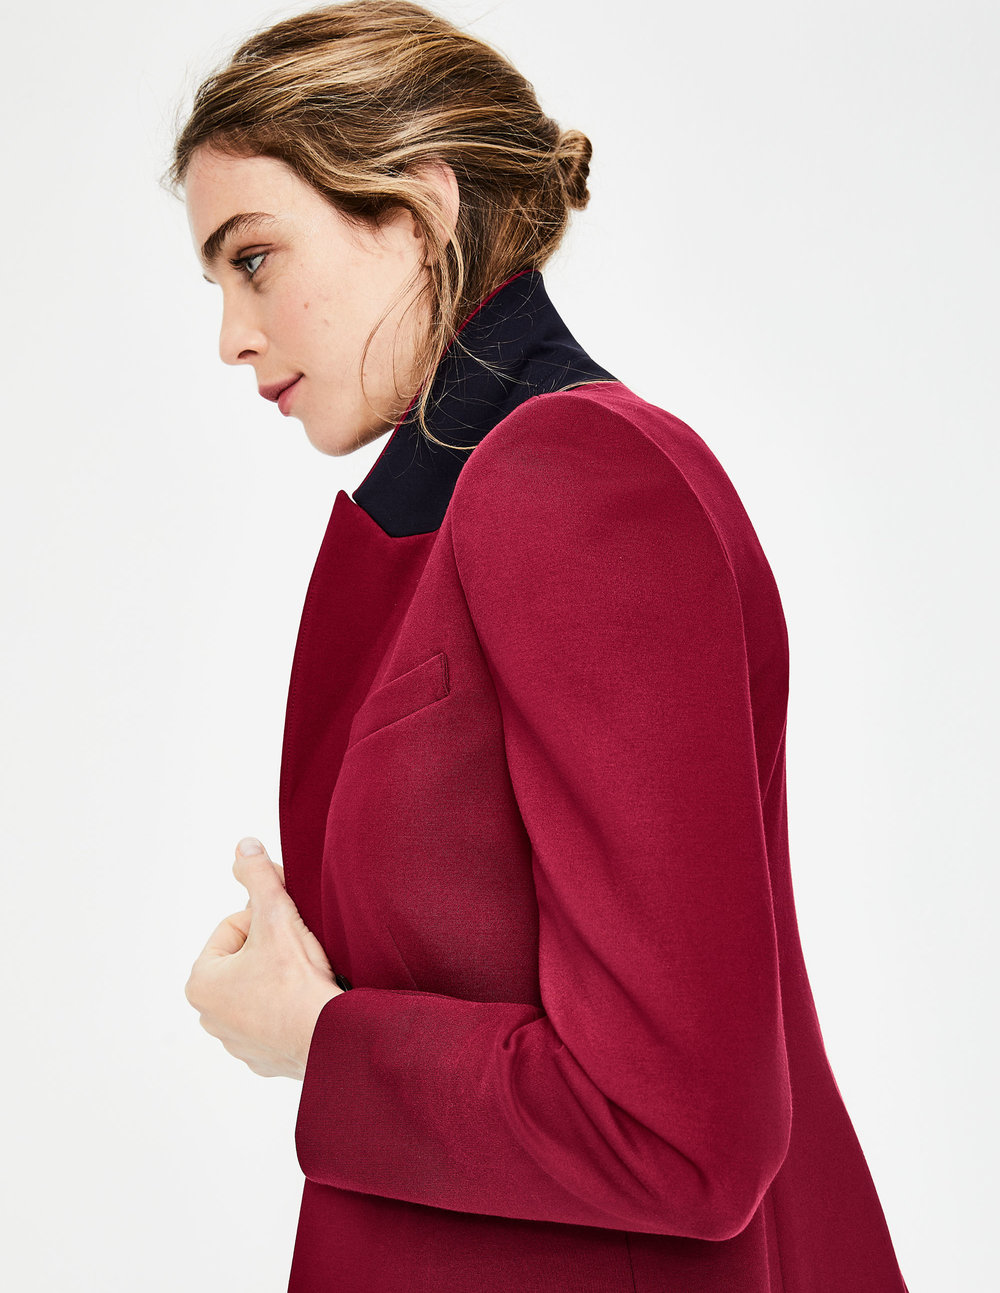 ELIZABETH PONTE BLAZER. Available in multiple colors. Boden. Was $150.00 To $170.00. Now $90.00 To $150.00.